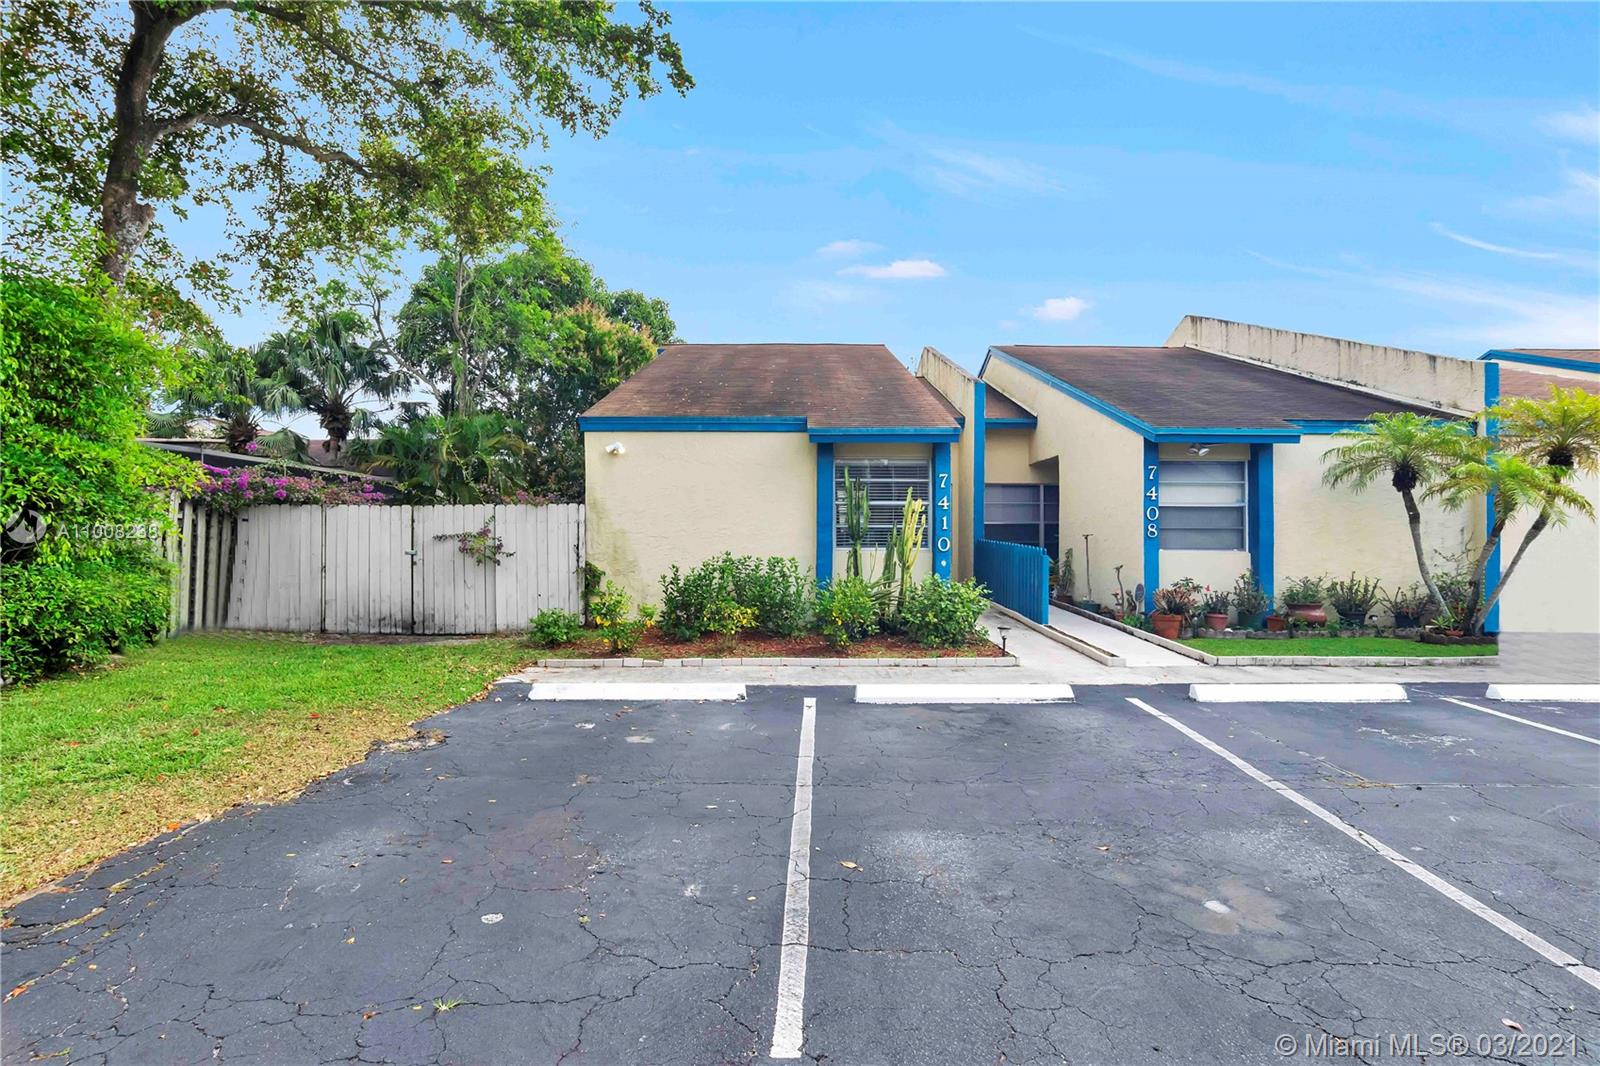 NICE, SPACIOUS, 2 BED/2 BATH SPLIT BEDROOM VILLA. HIGH CEILINGS. ROOMY BEDROOMS, LARGE FAMILY AREA. LOTS OF STORAGE: ATTIC, PANTRY CLOSET, LINEN CLOSET, MASTER BEDROOM WALK IN CLOSET. NICE MAINTAINED COMMUNITY. LOW HOA FEES. FHA APPROVED. CLOSE TO SHOPPING, RESTAURANTS AND MAJOR ROADS. THIS WON'T LAST!